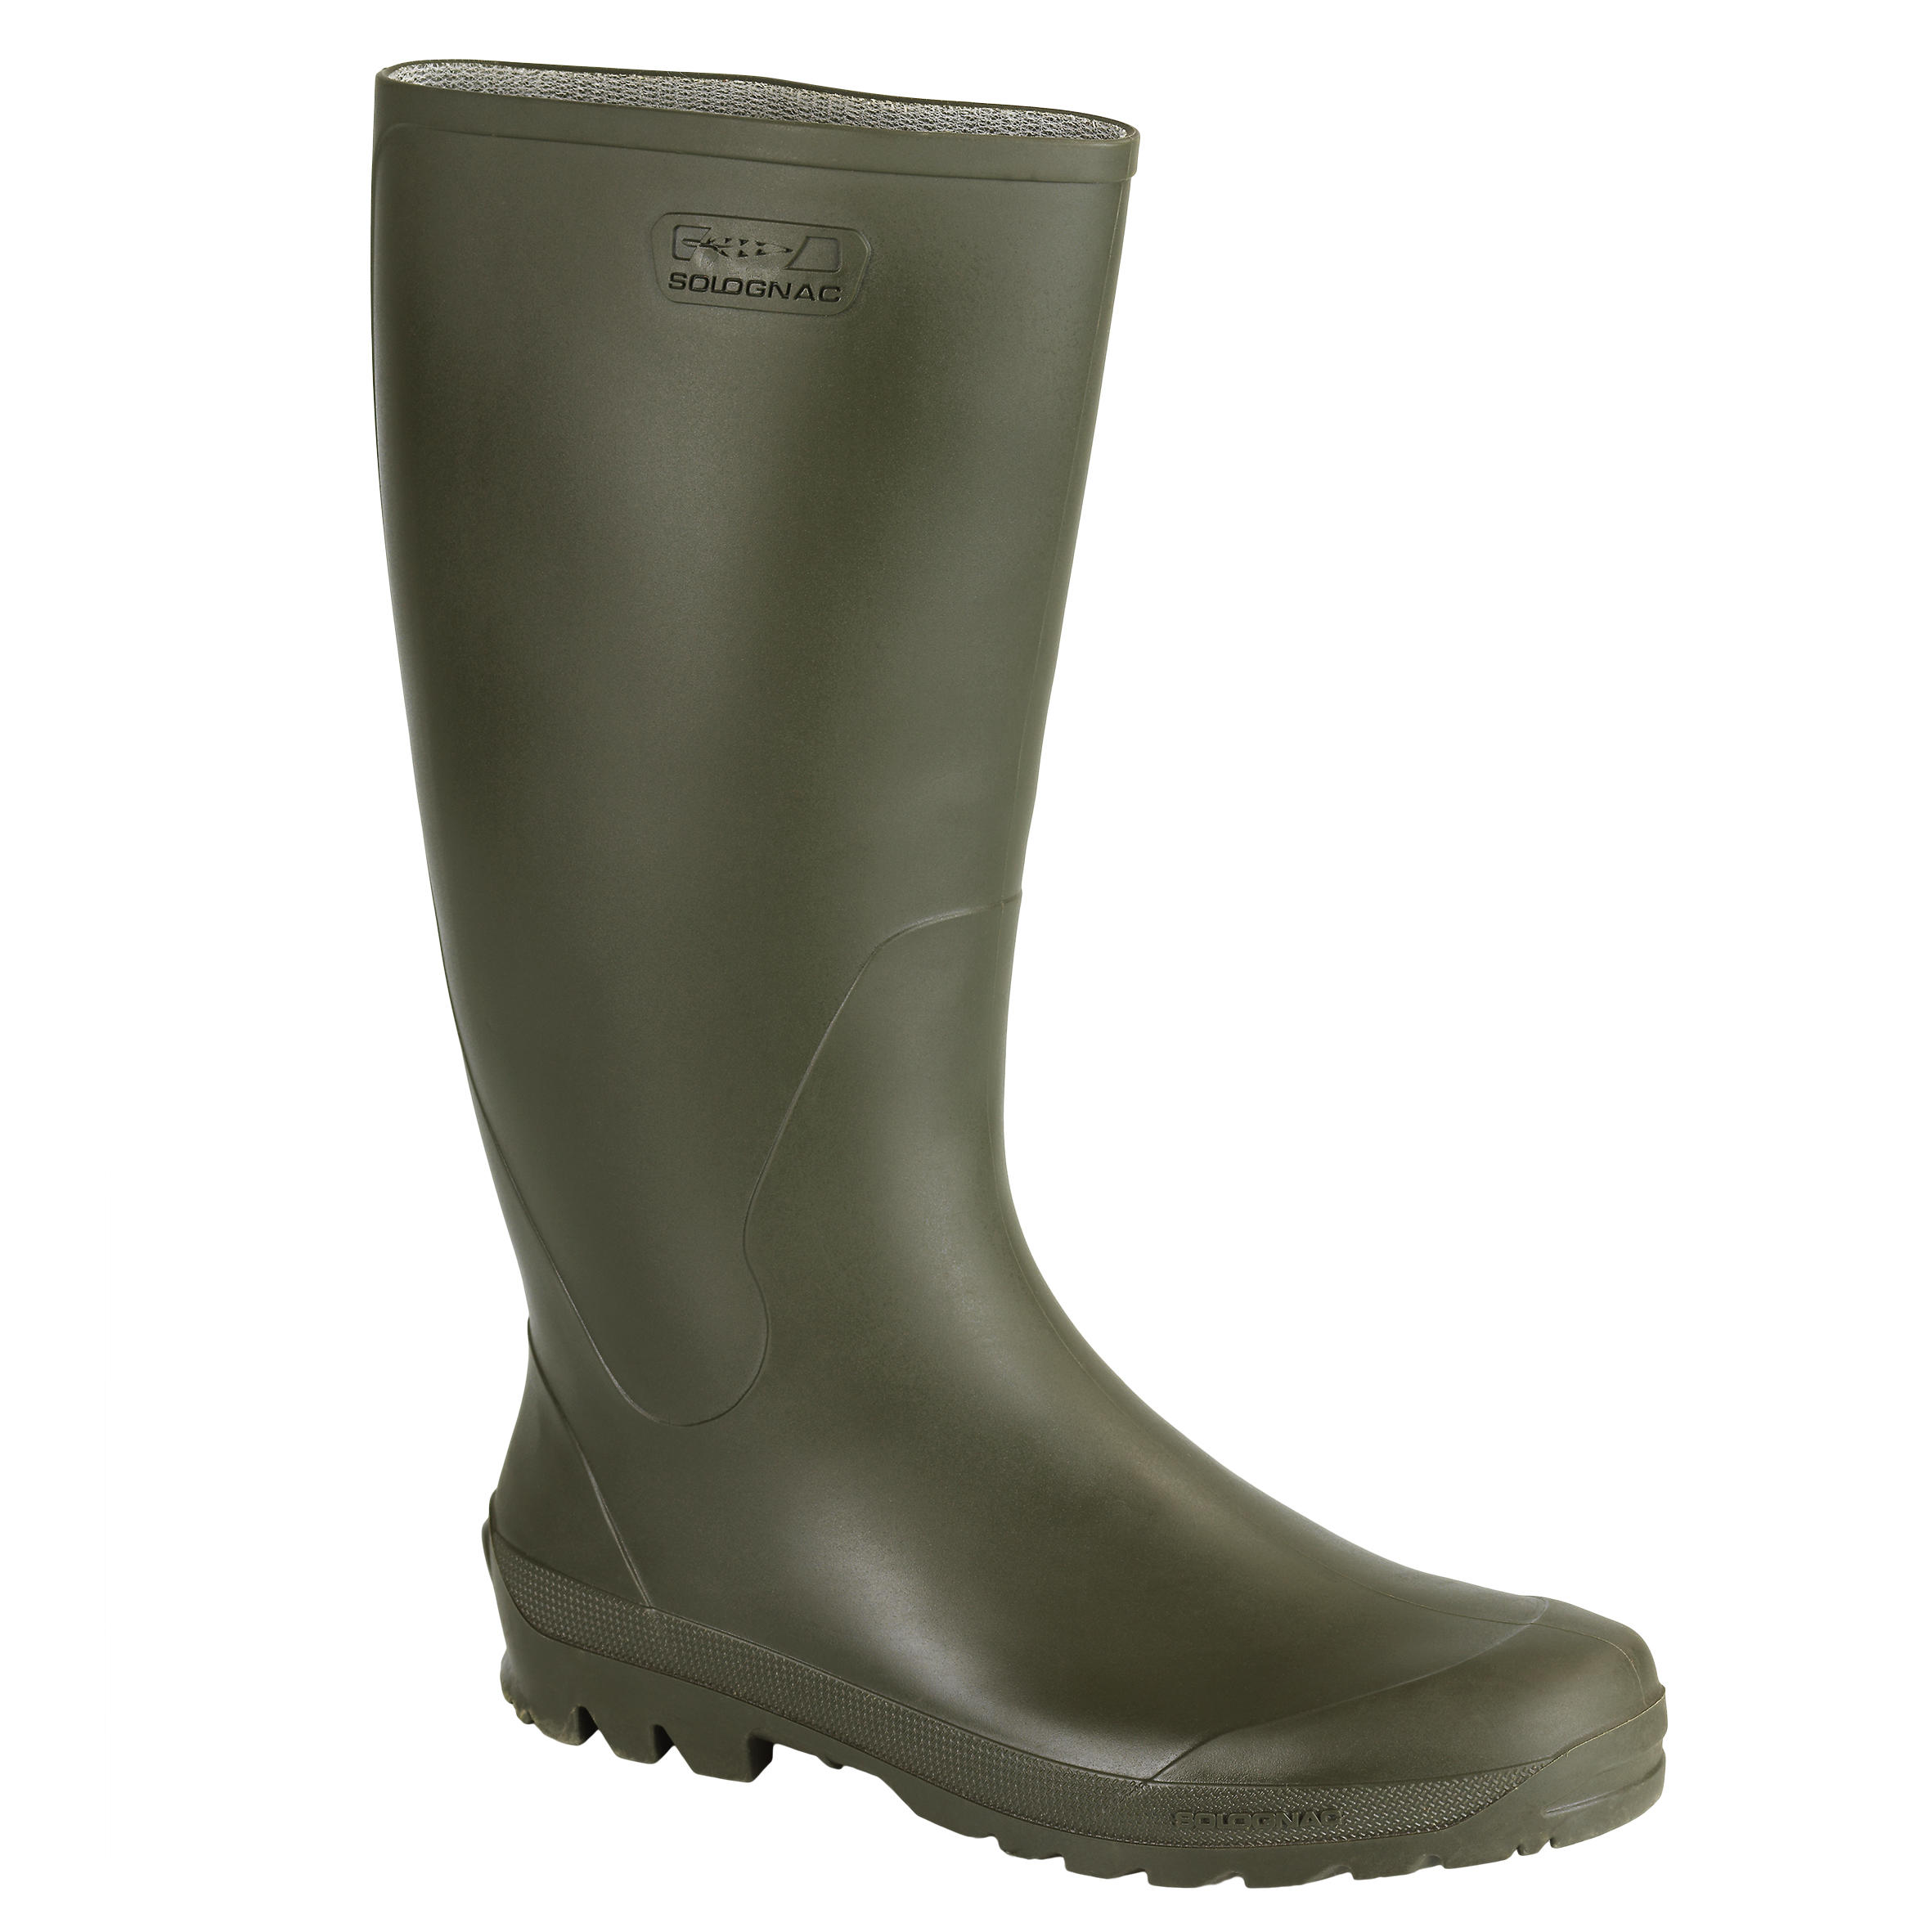 GLENARM 100 HUNTING WELLIES - KHAKI / GREEN